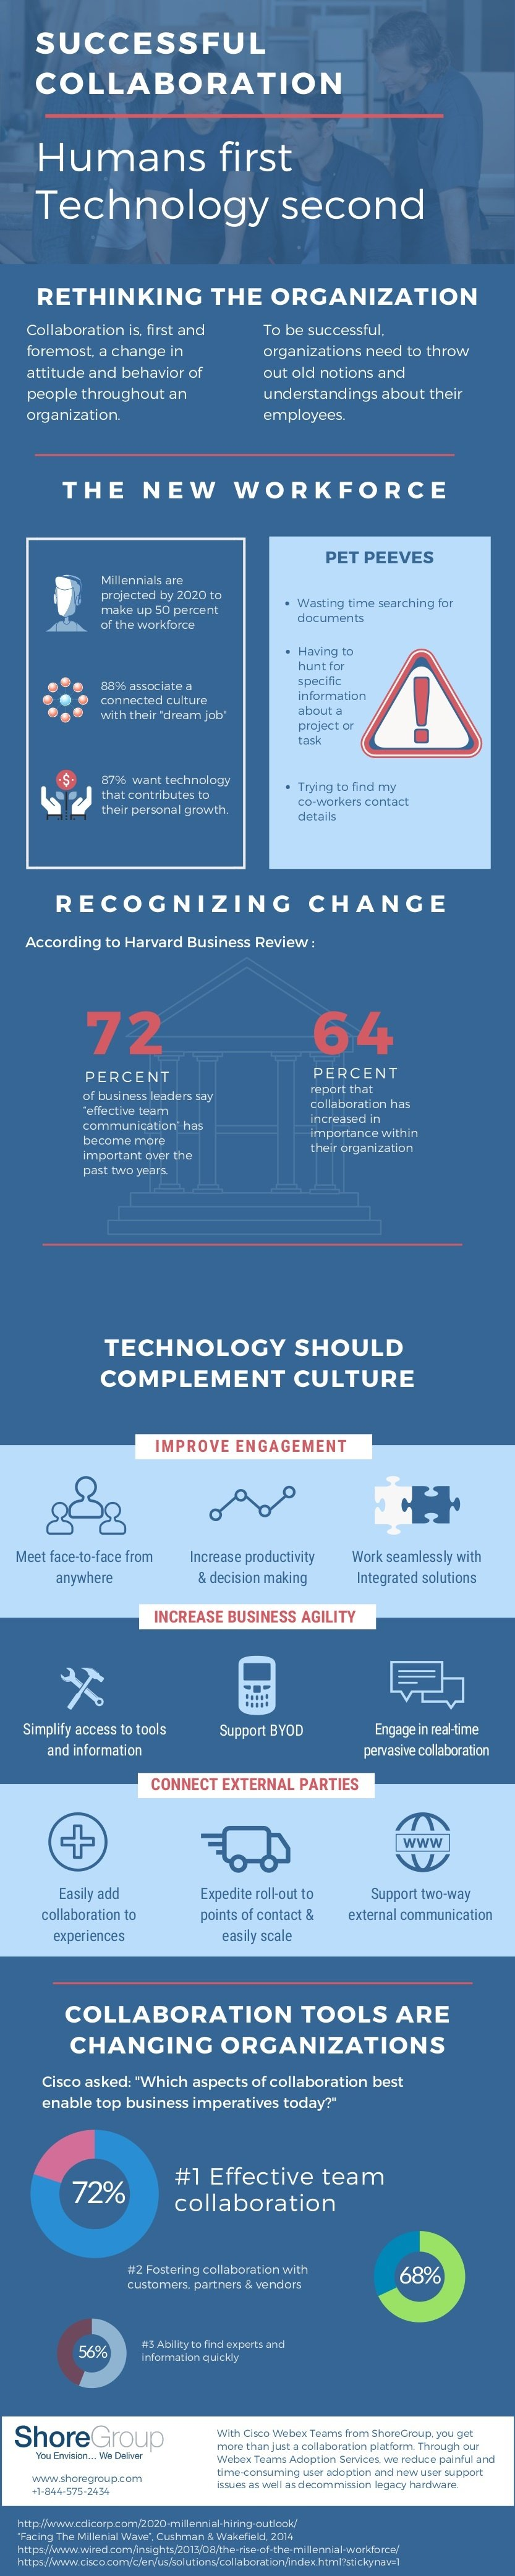 Infographic Successful Collaboration Humans First Technology Second